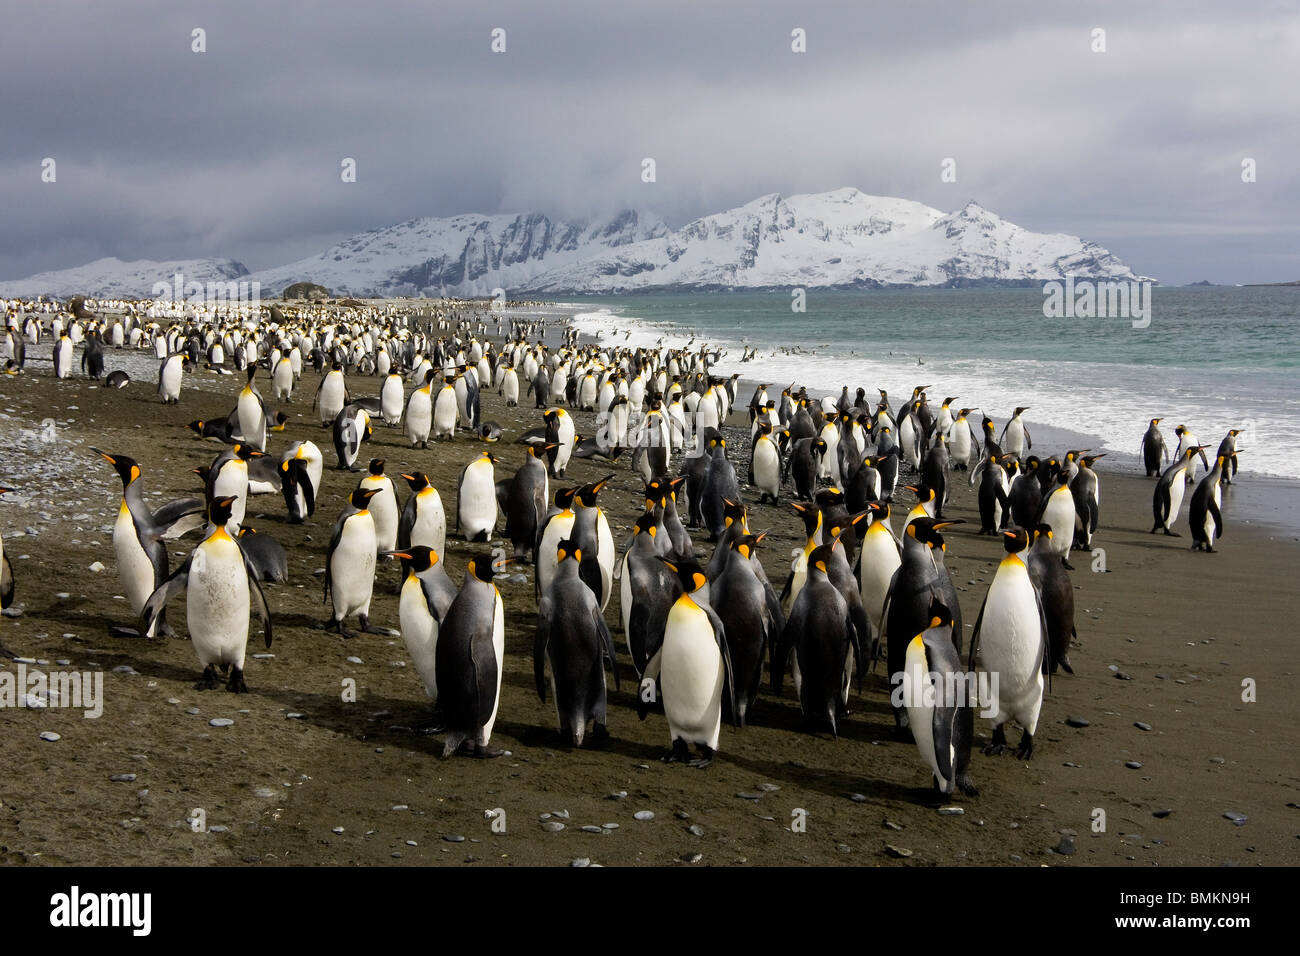 King Penguins on Beach, Salisbury Plain, South Georgia - Stock Image